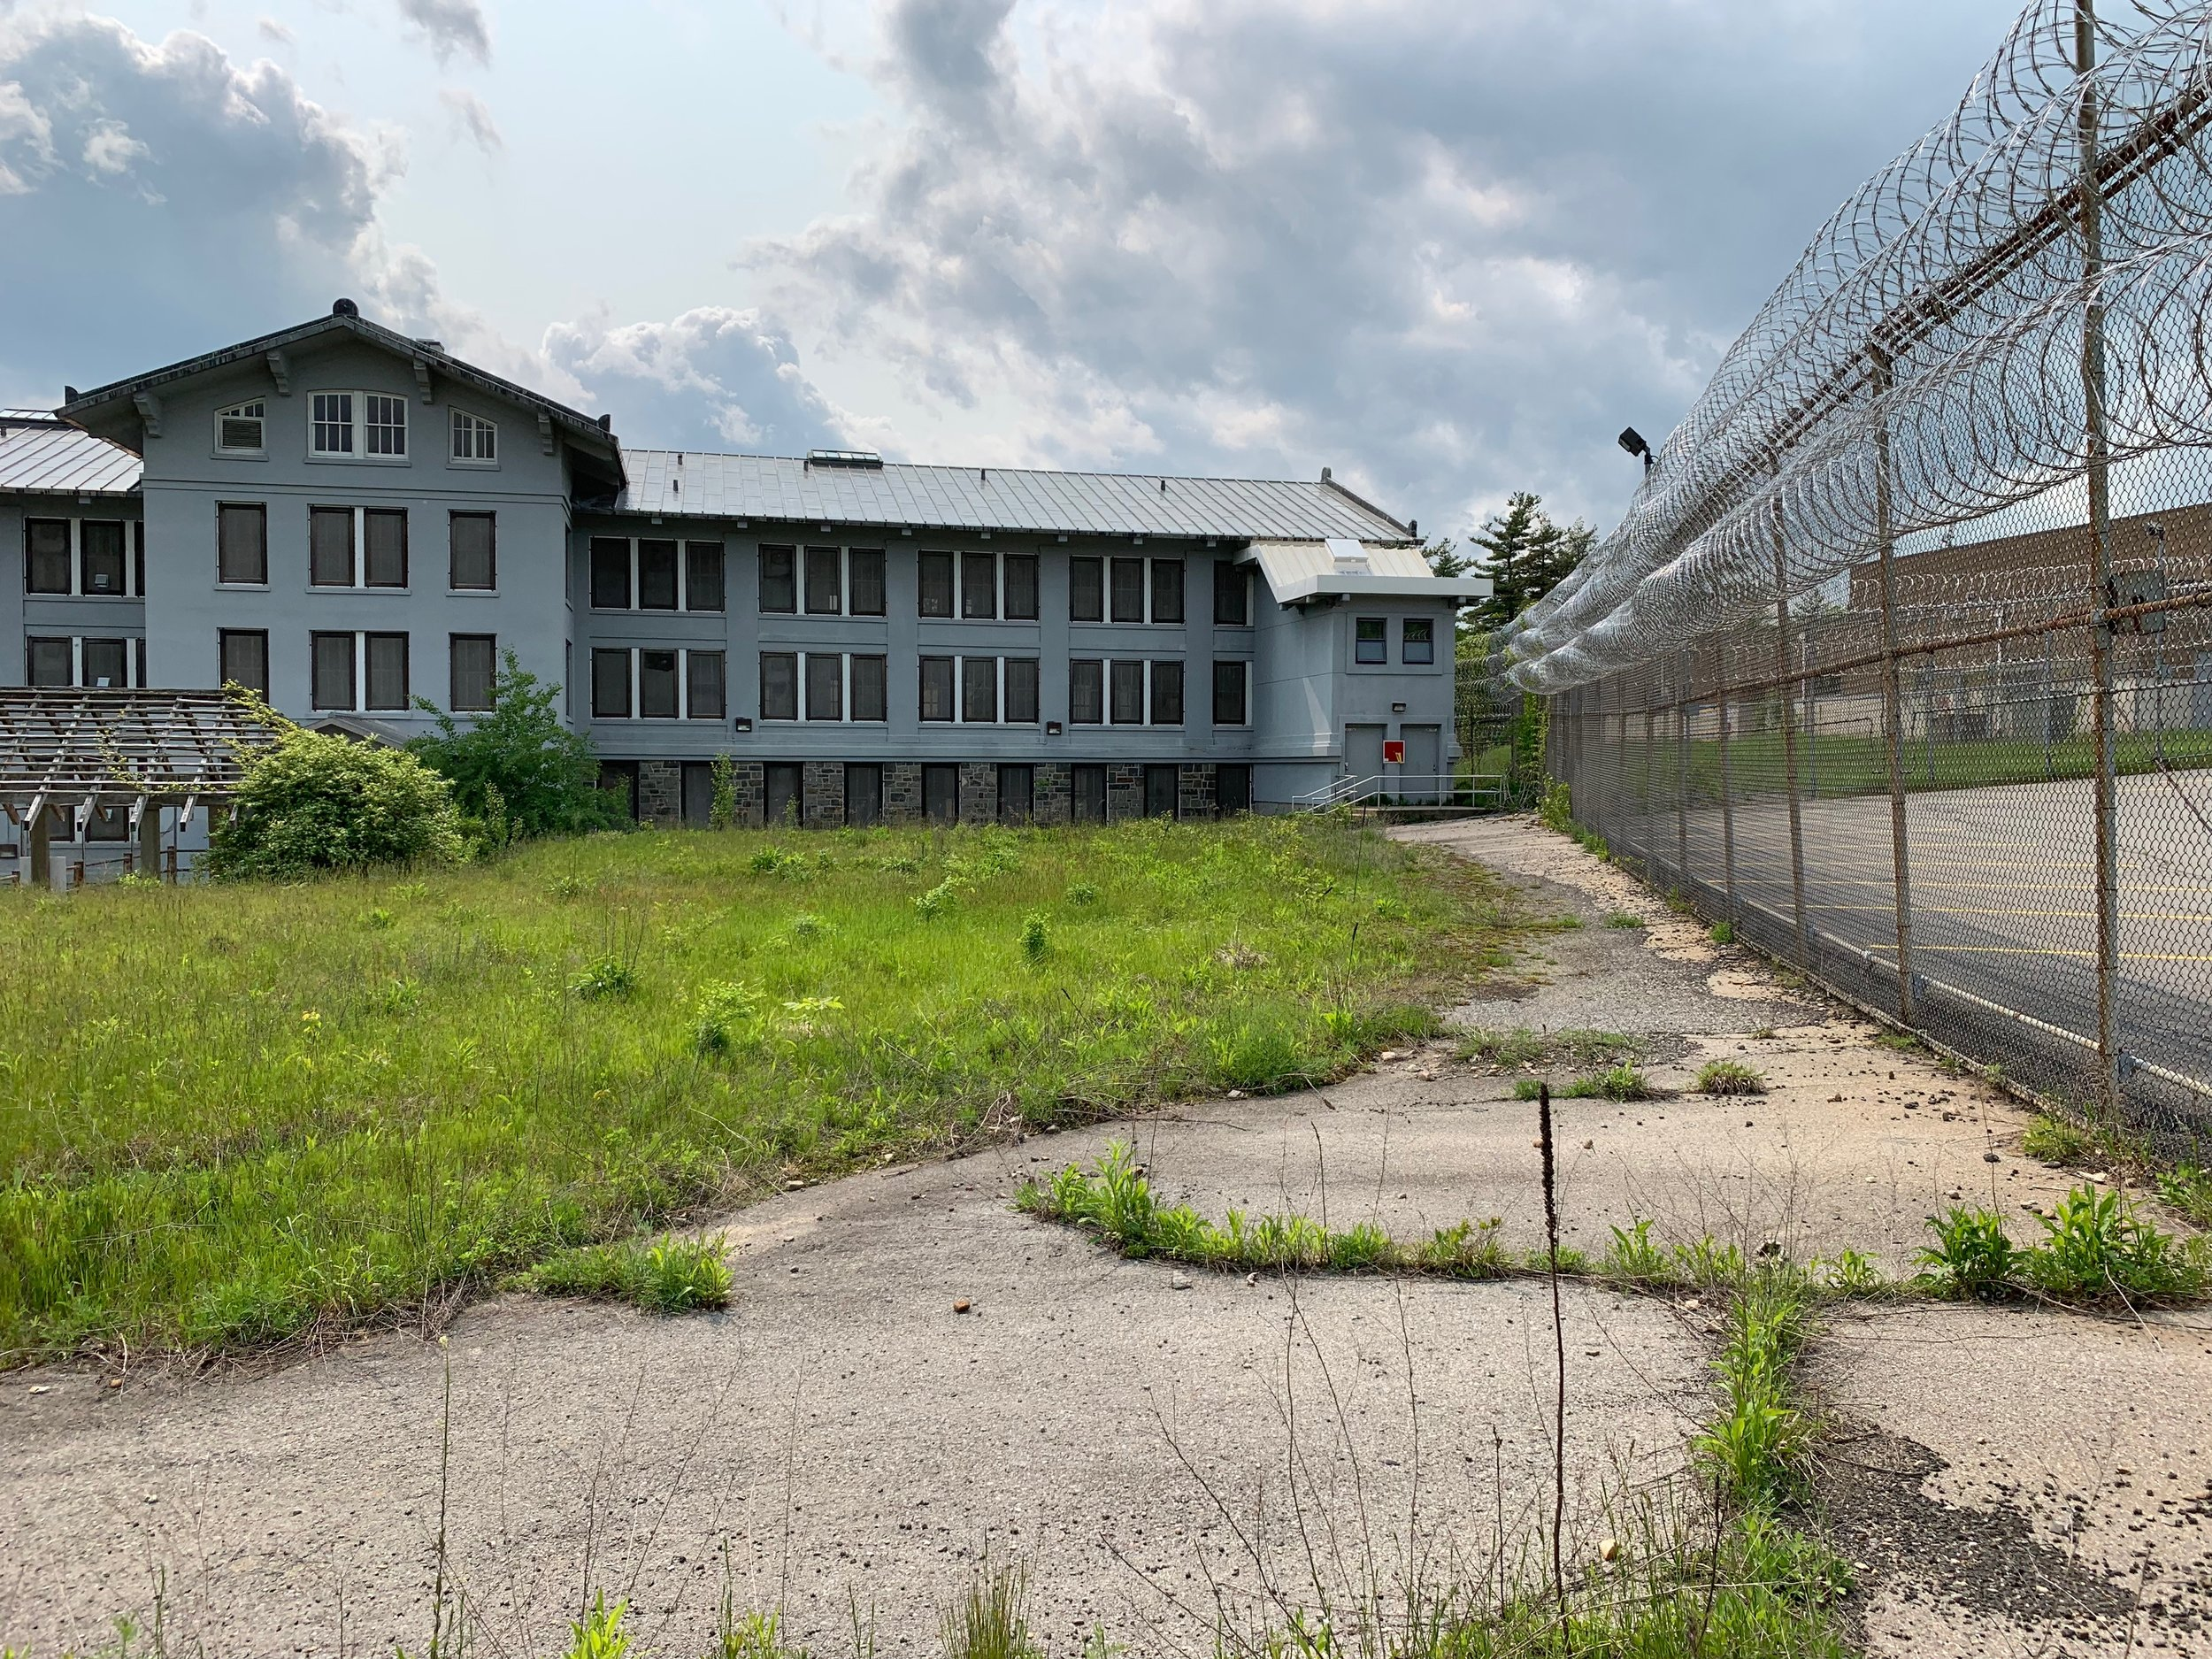 EMPIRE STATE DEVELOPMENT SEEKS A DEVELOPER TO BRING BACK TO LIFE THE 325-ACRE SITE WHERE THE HOTEL BALMORAL ONCE STOOD, FOLLOWED BY A SANATORIUM FOR TUBERCULOSIS PATIENTS, A VETERANS' REST HOME, A RESIDENCE AND HOME FOR THE DEVELOPMENTALLY DISABLED, AND A MINIMUM- AND MEDIUM-SECURITY PRISON.